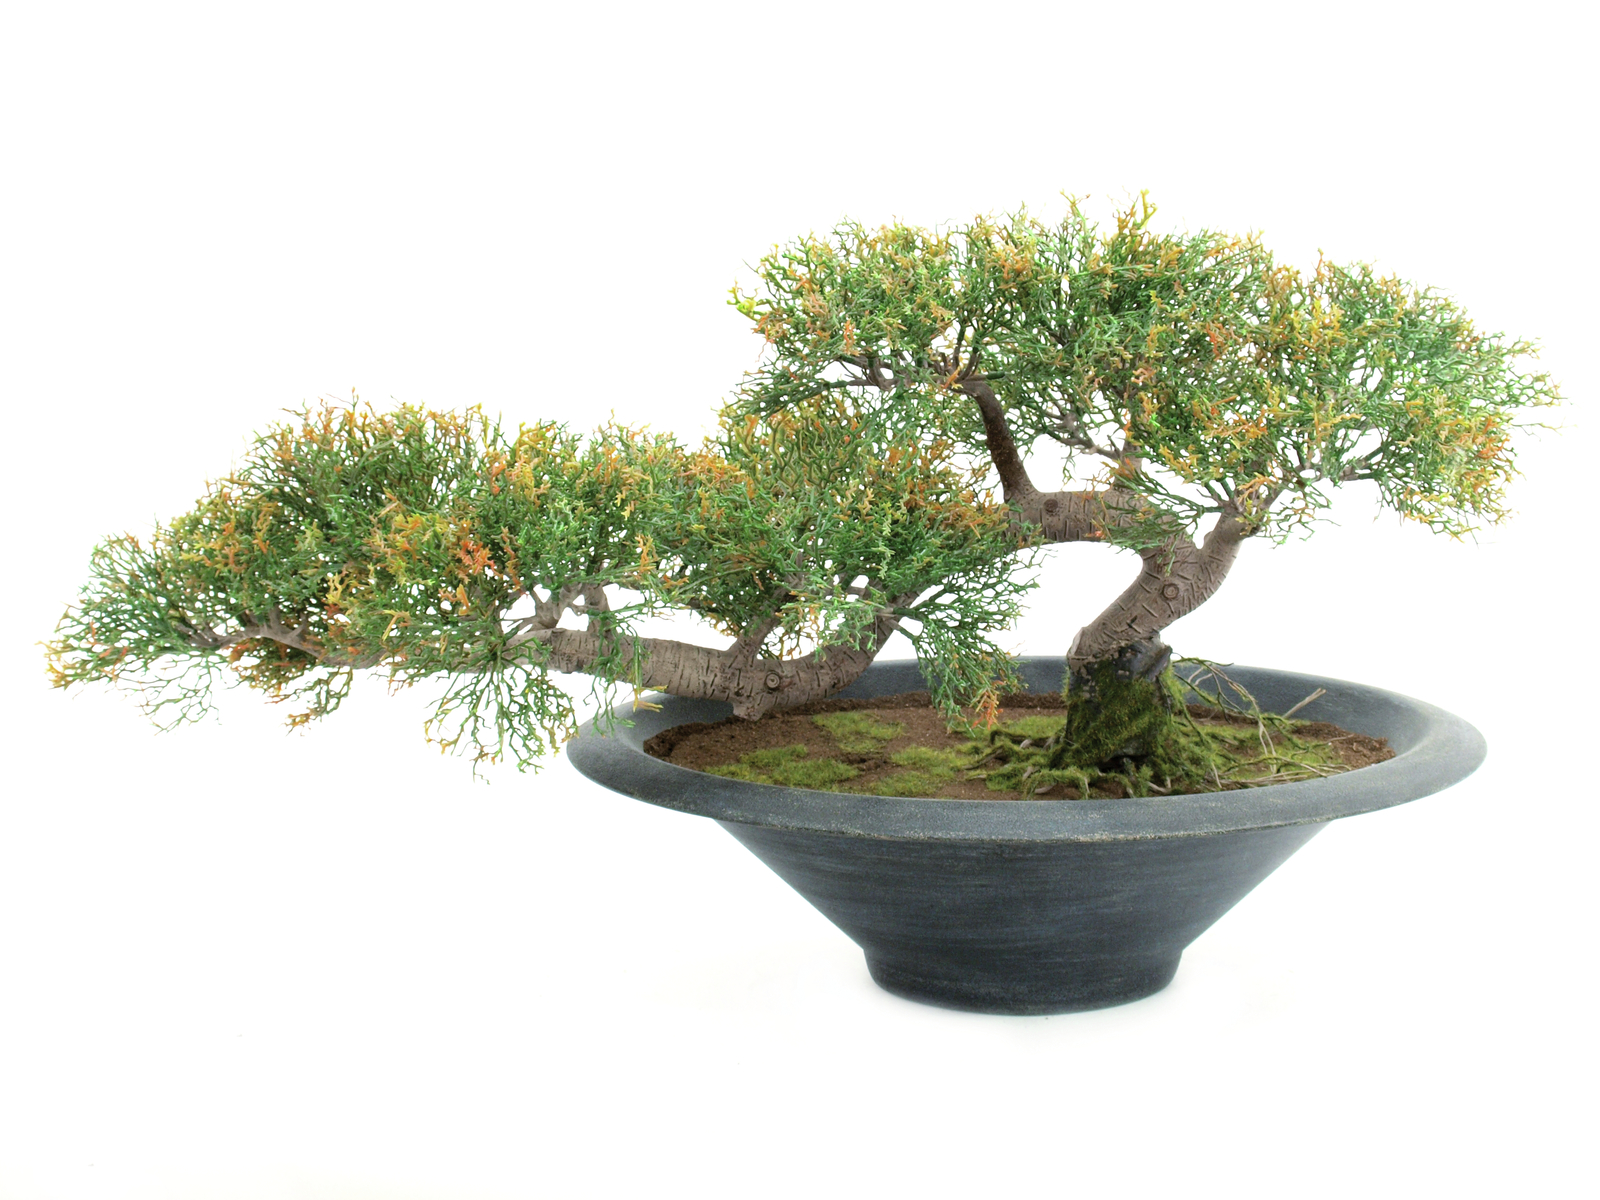 EUROPALMS Bonsai-Zeder, Kunstpflanze, 40cm